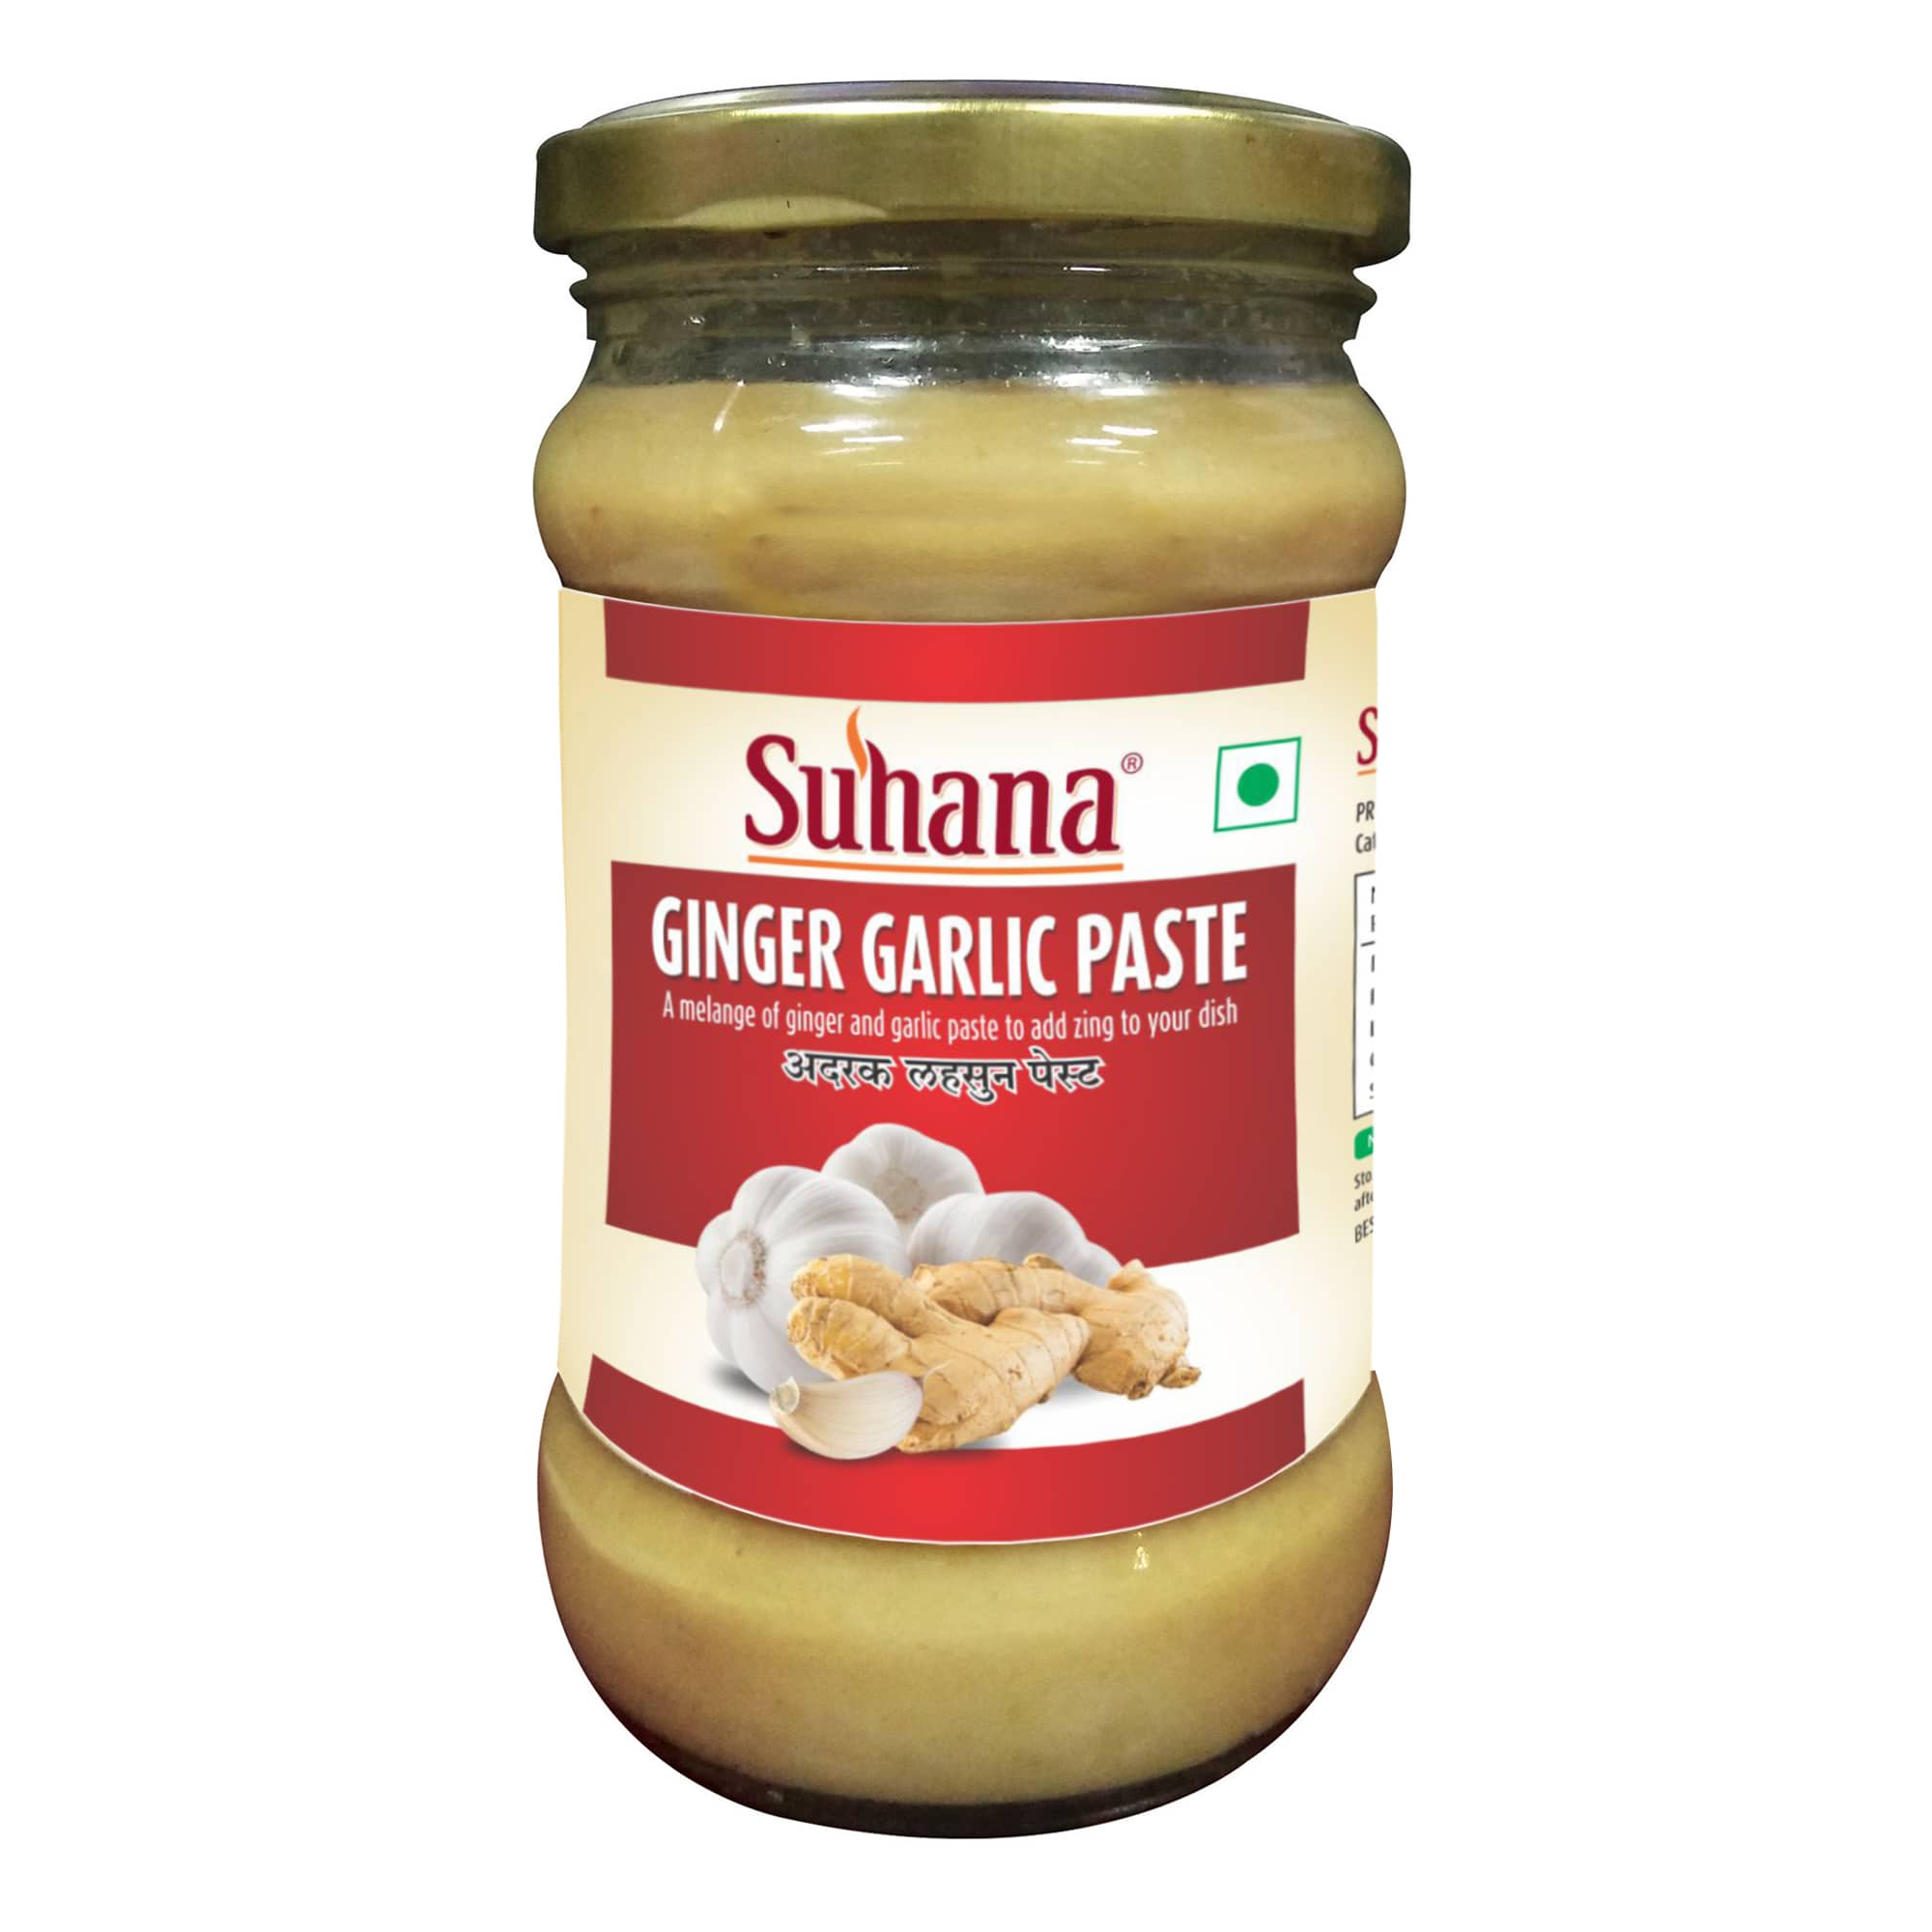 Suhana Ginger Garlic Paste Jar